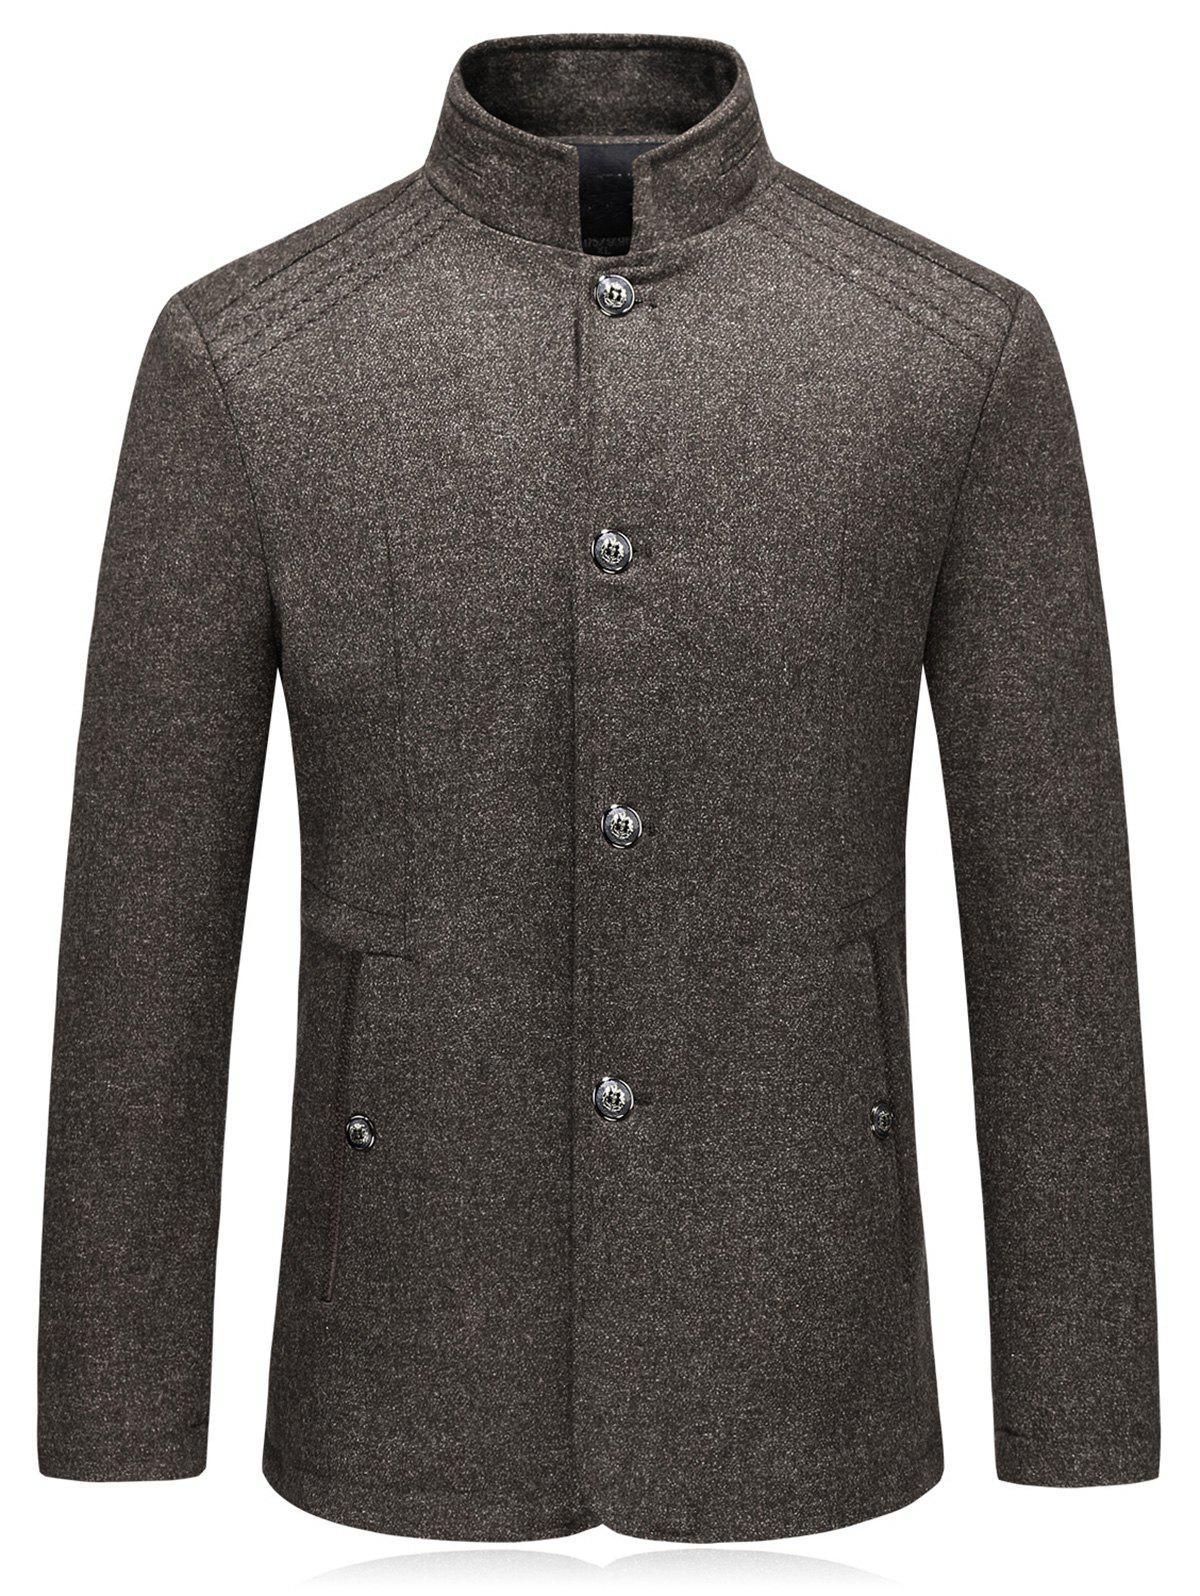 Blazer en laine simple boutonnage - Café Clair 2XL